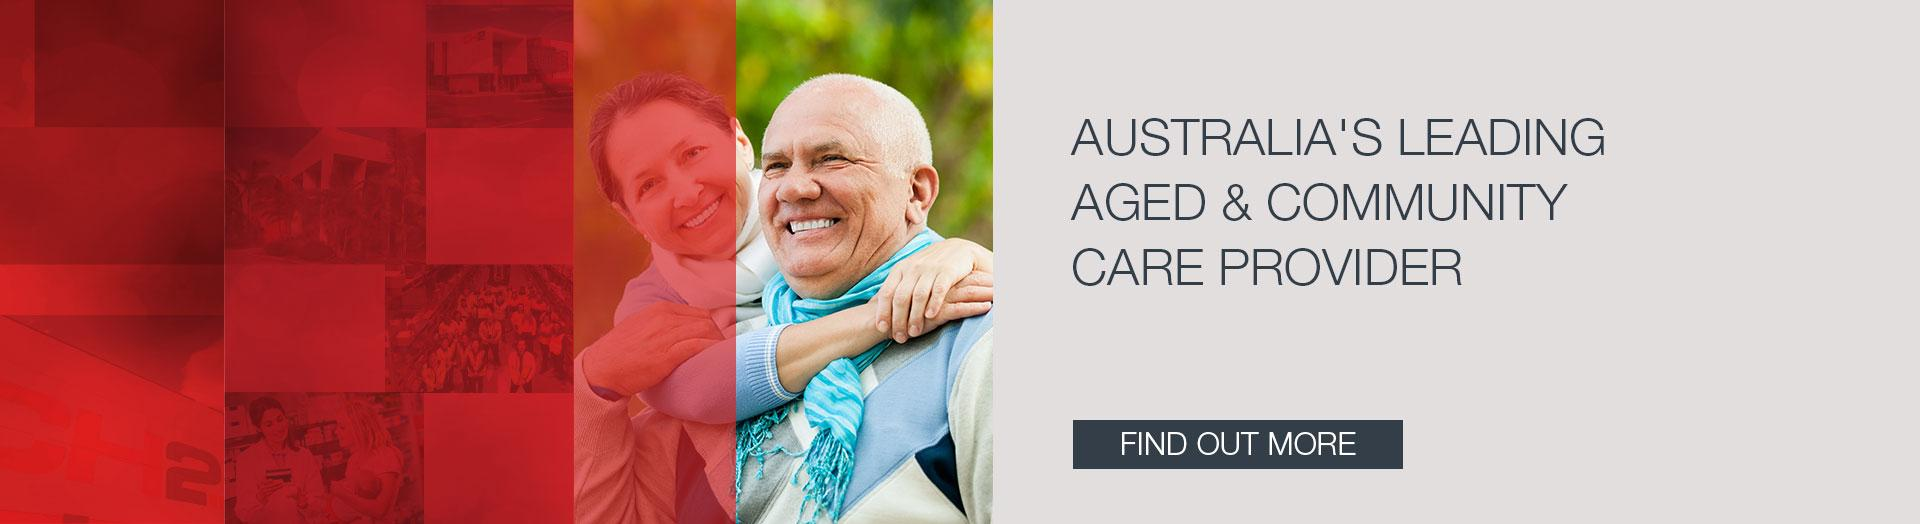 Australia's Leading Aged and Community Care Provider